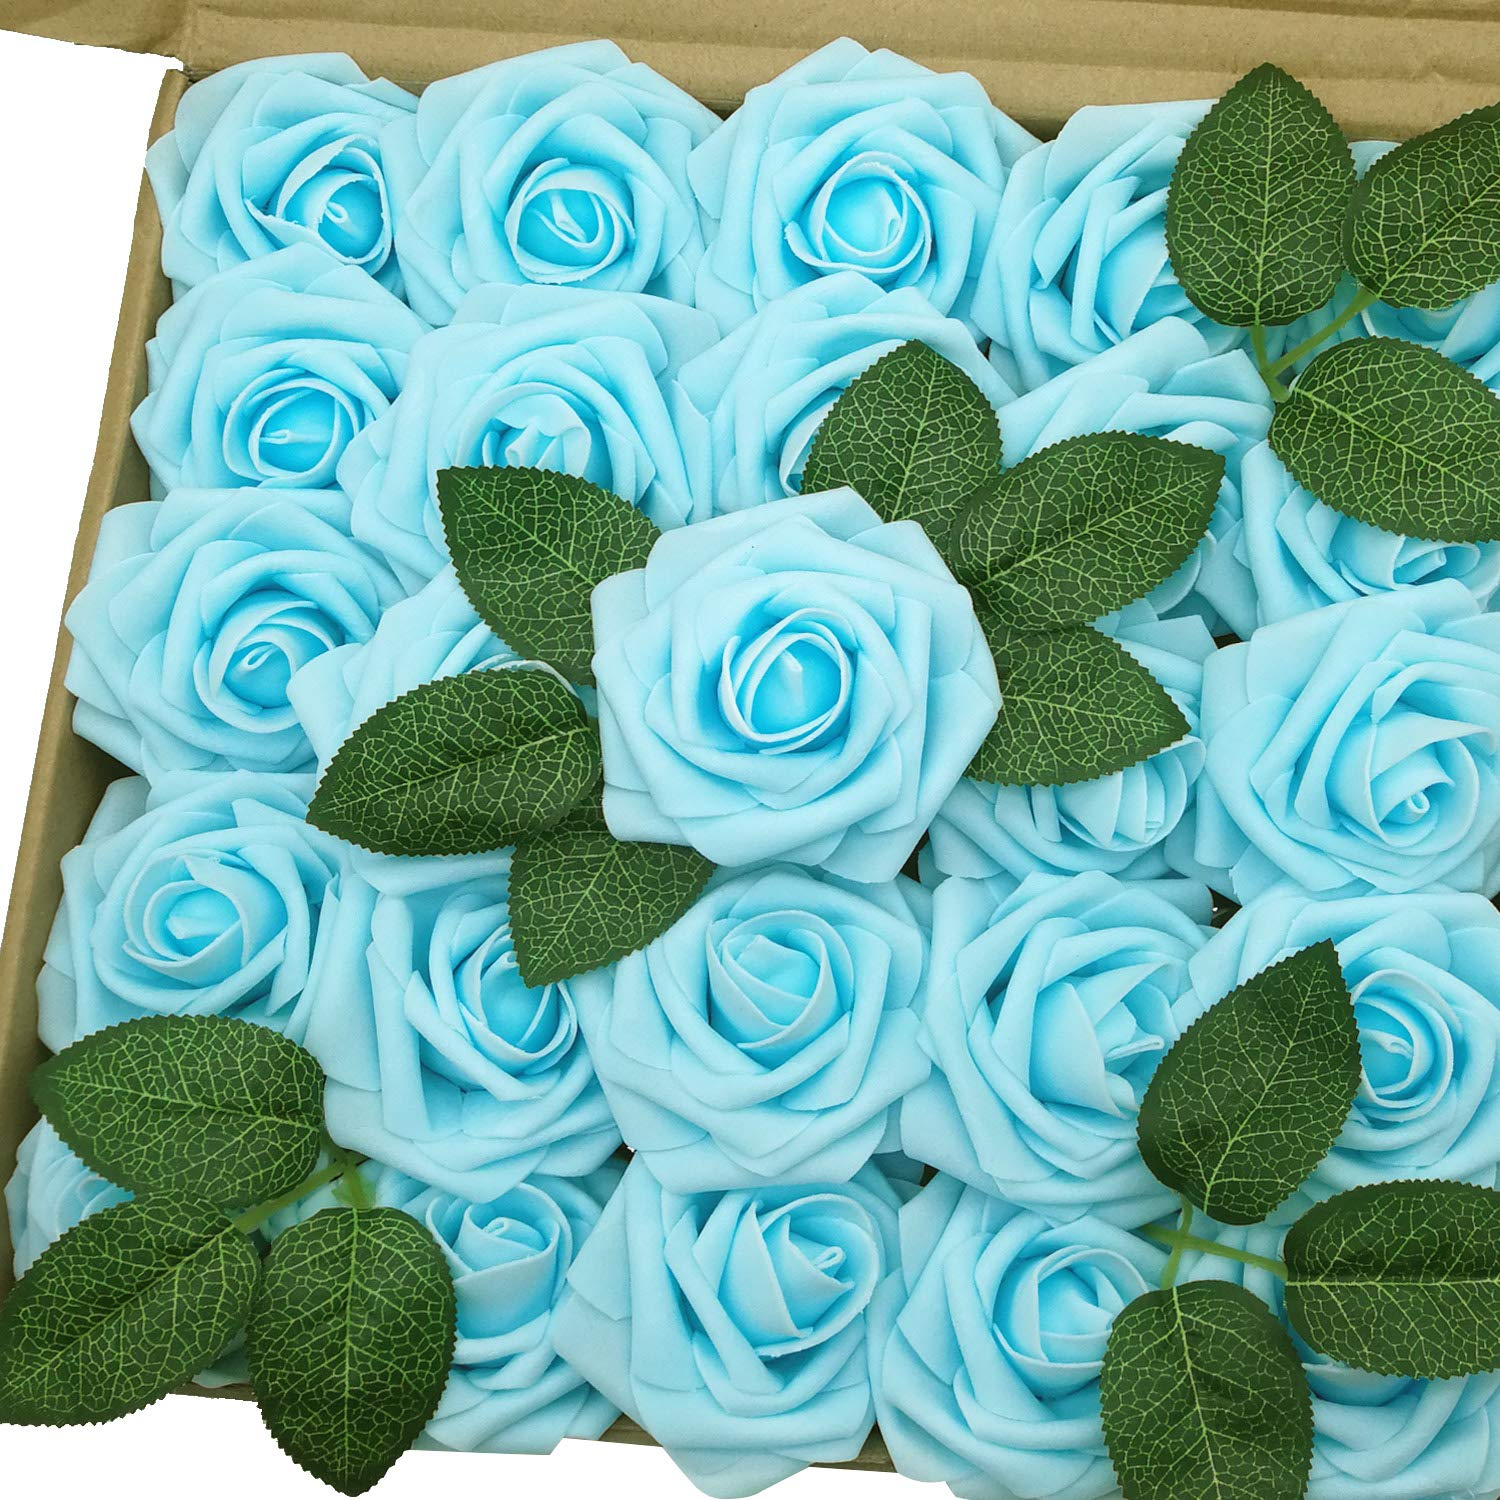 Cool J Rijzen Artificial Flowers 50Pcs Real Touch Light Blue Fake Roses With Stem For Baby Shower Floral Bridal Shower Centerpieces Wedding Bouquet Home Interior Design Ideas Clesiryabchikinfo